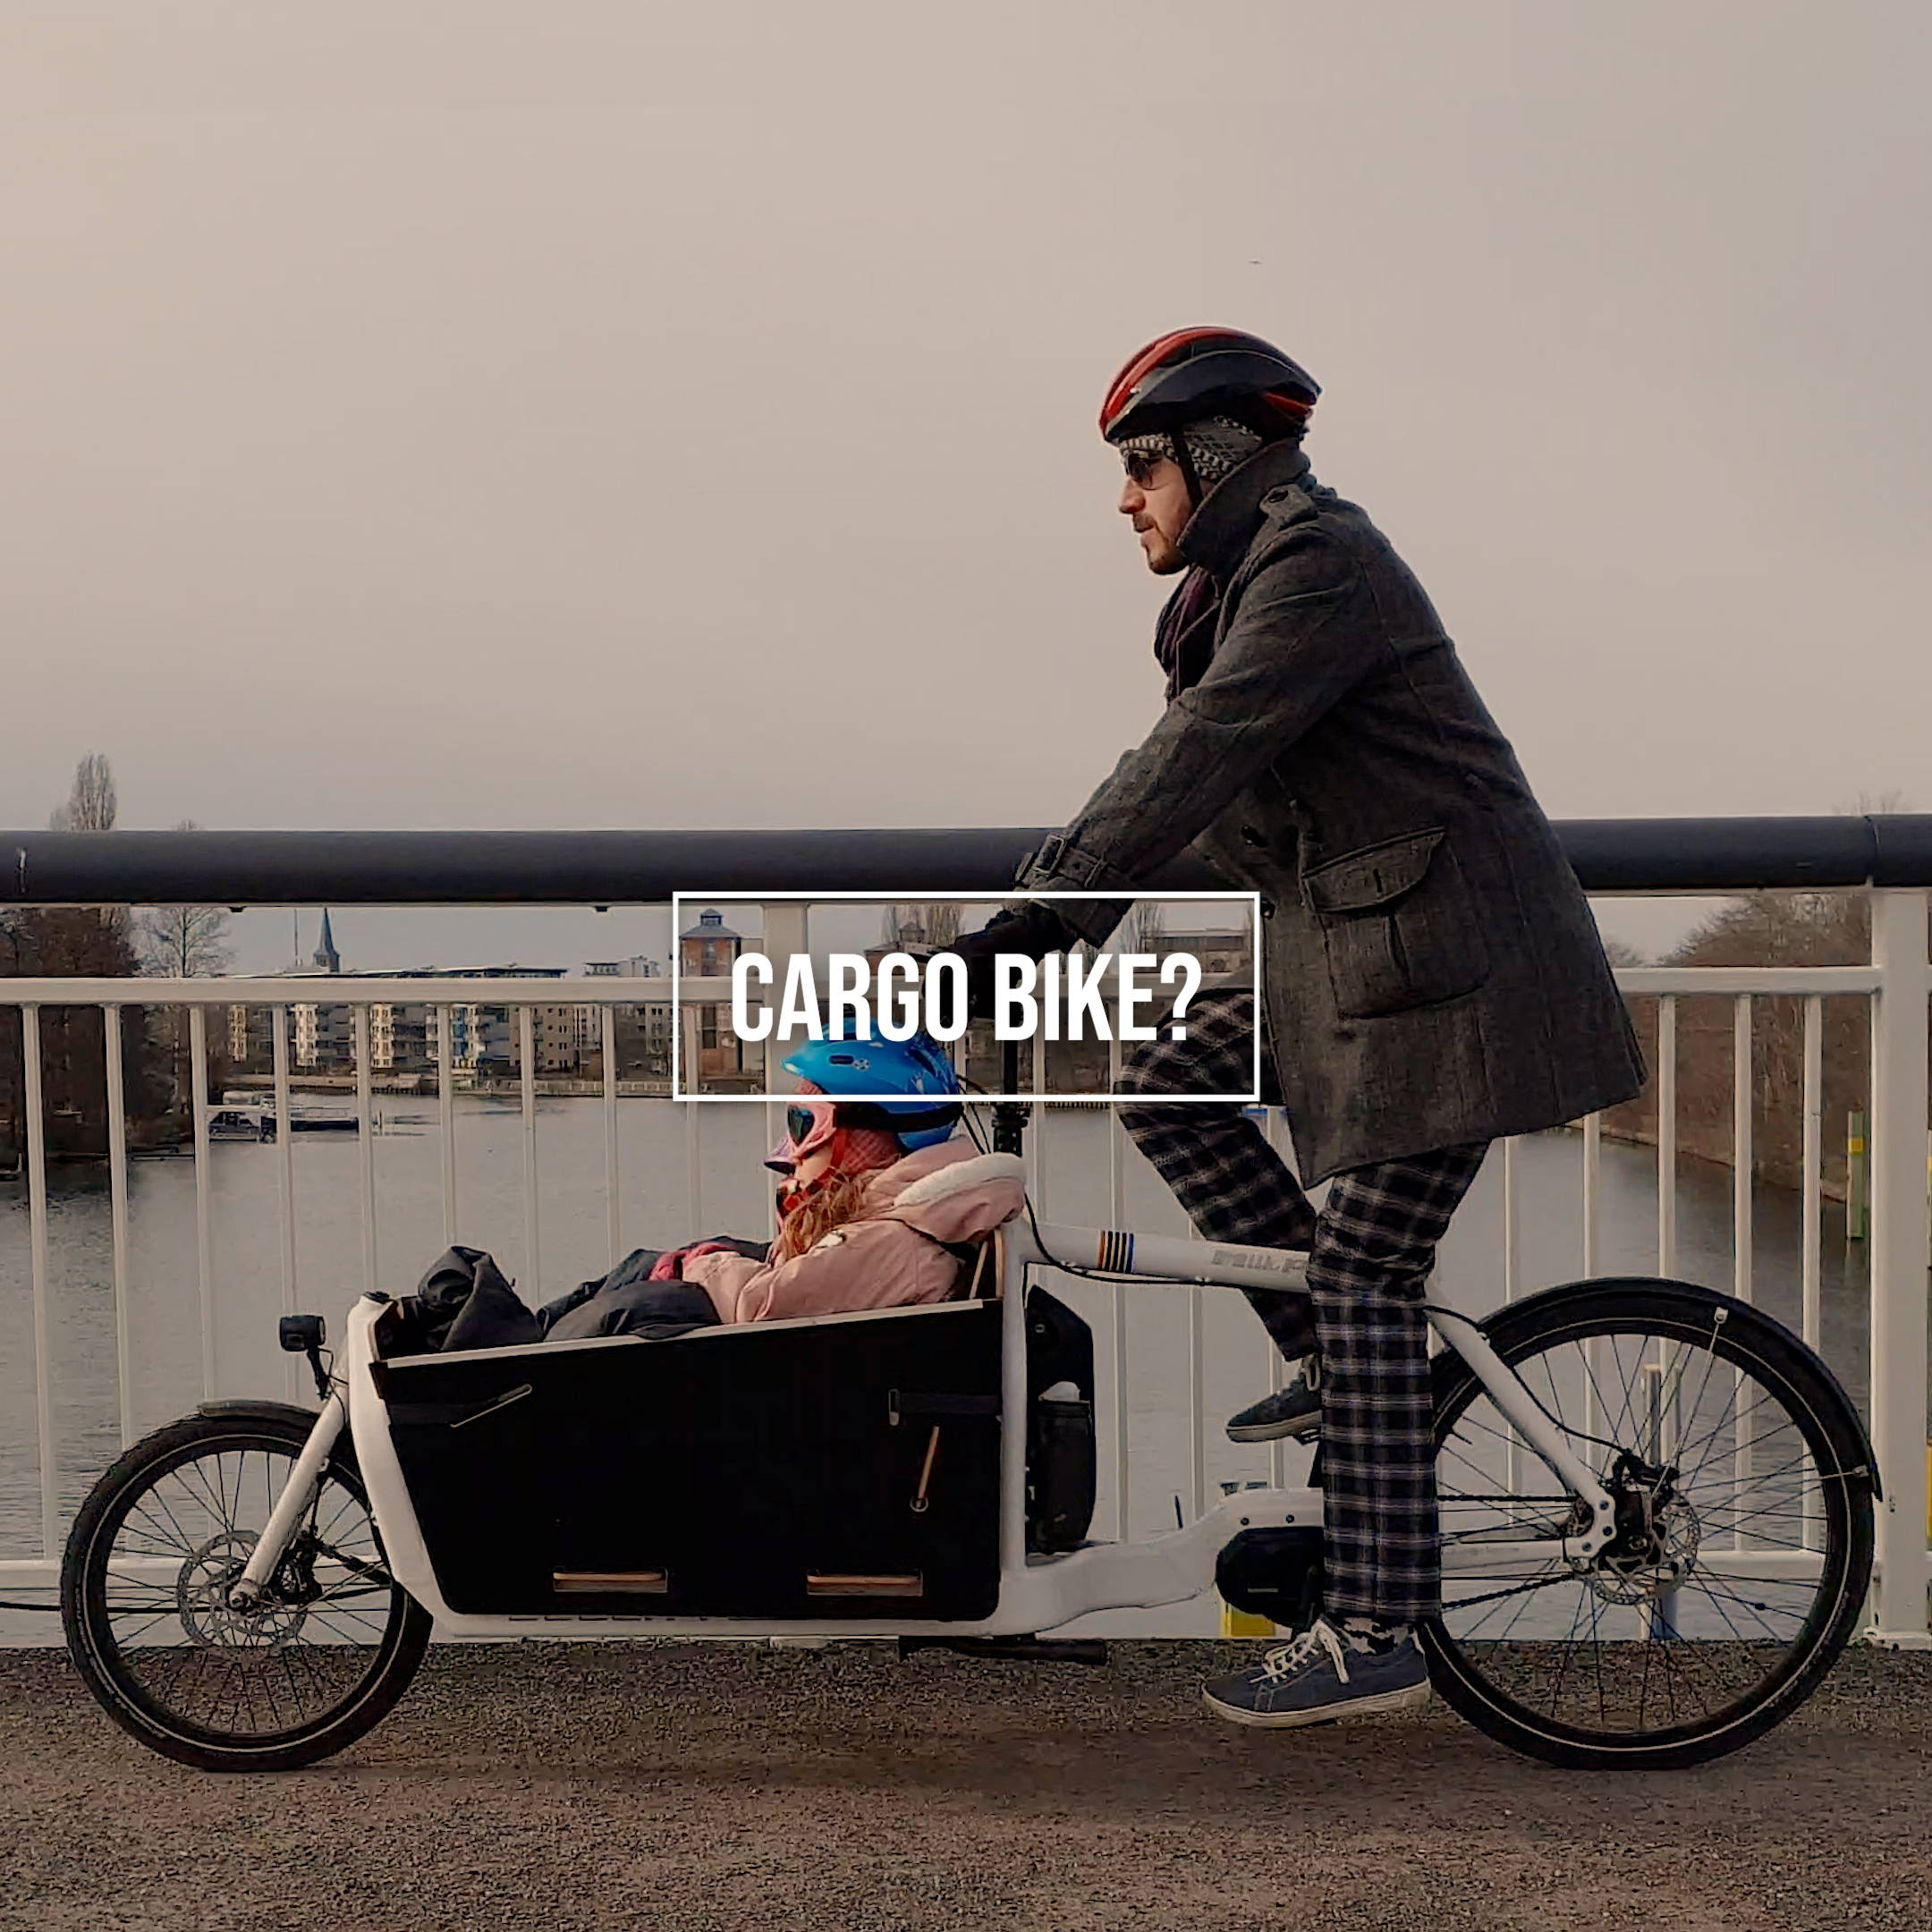 Cargo bike with wheels and saddler secured against theft